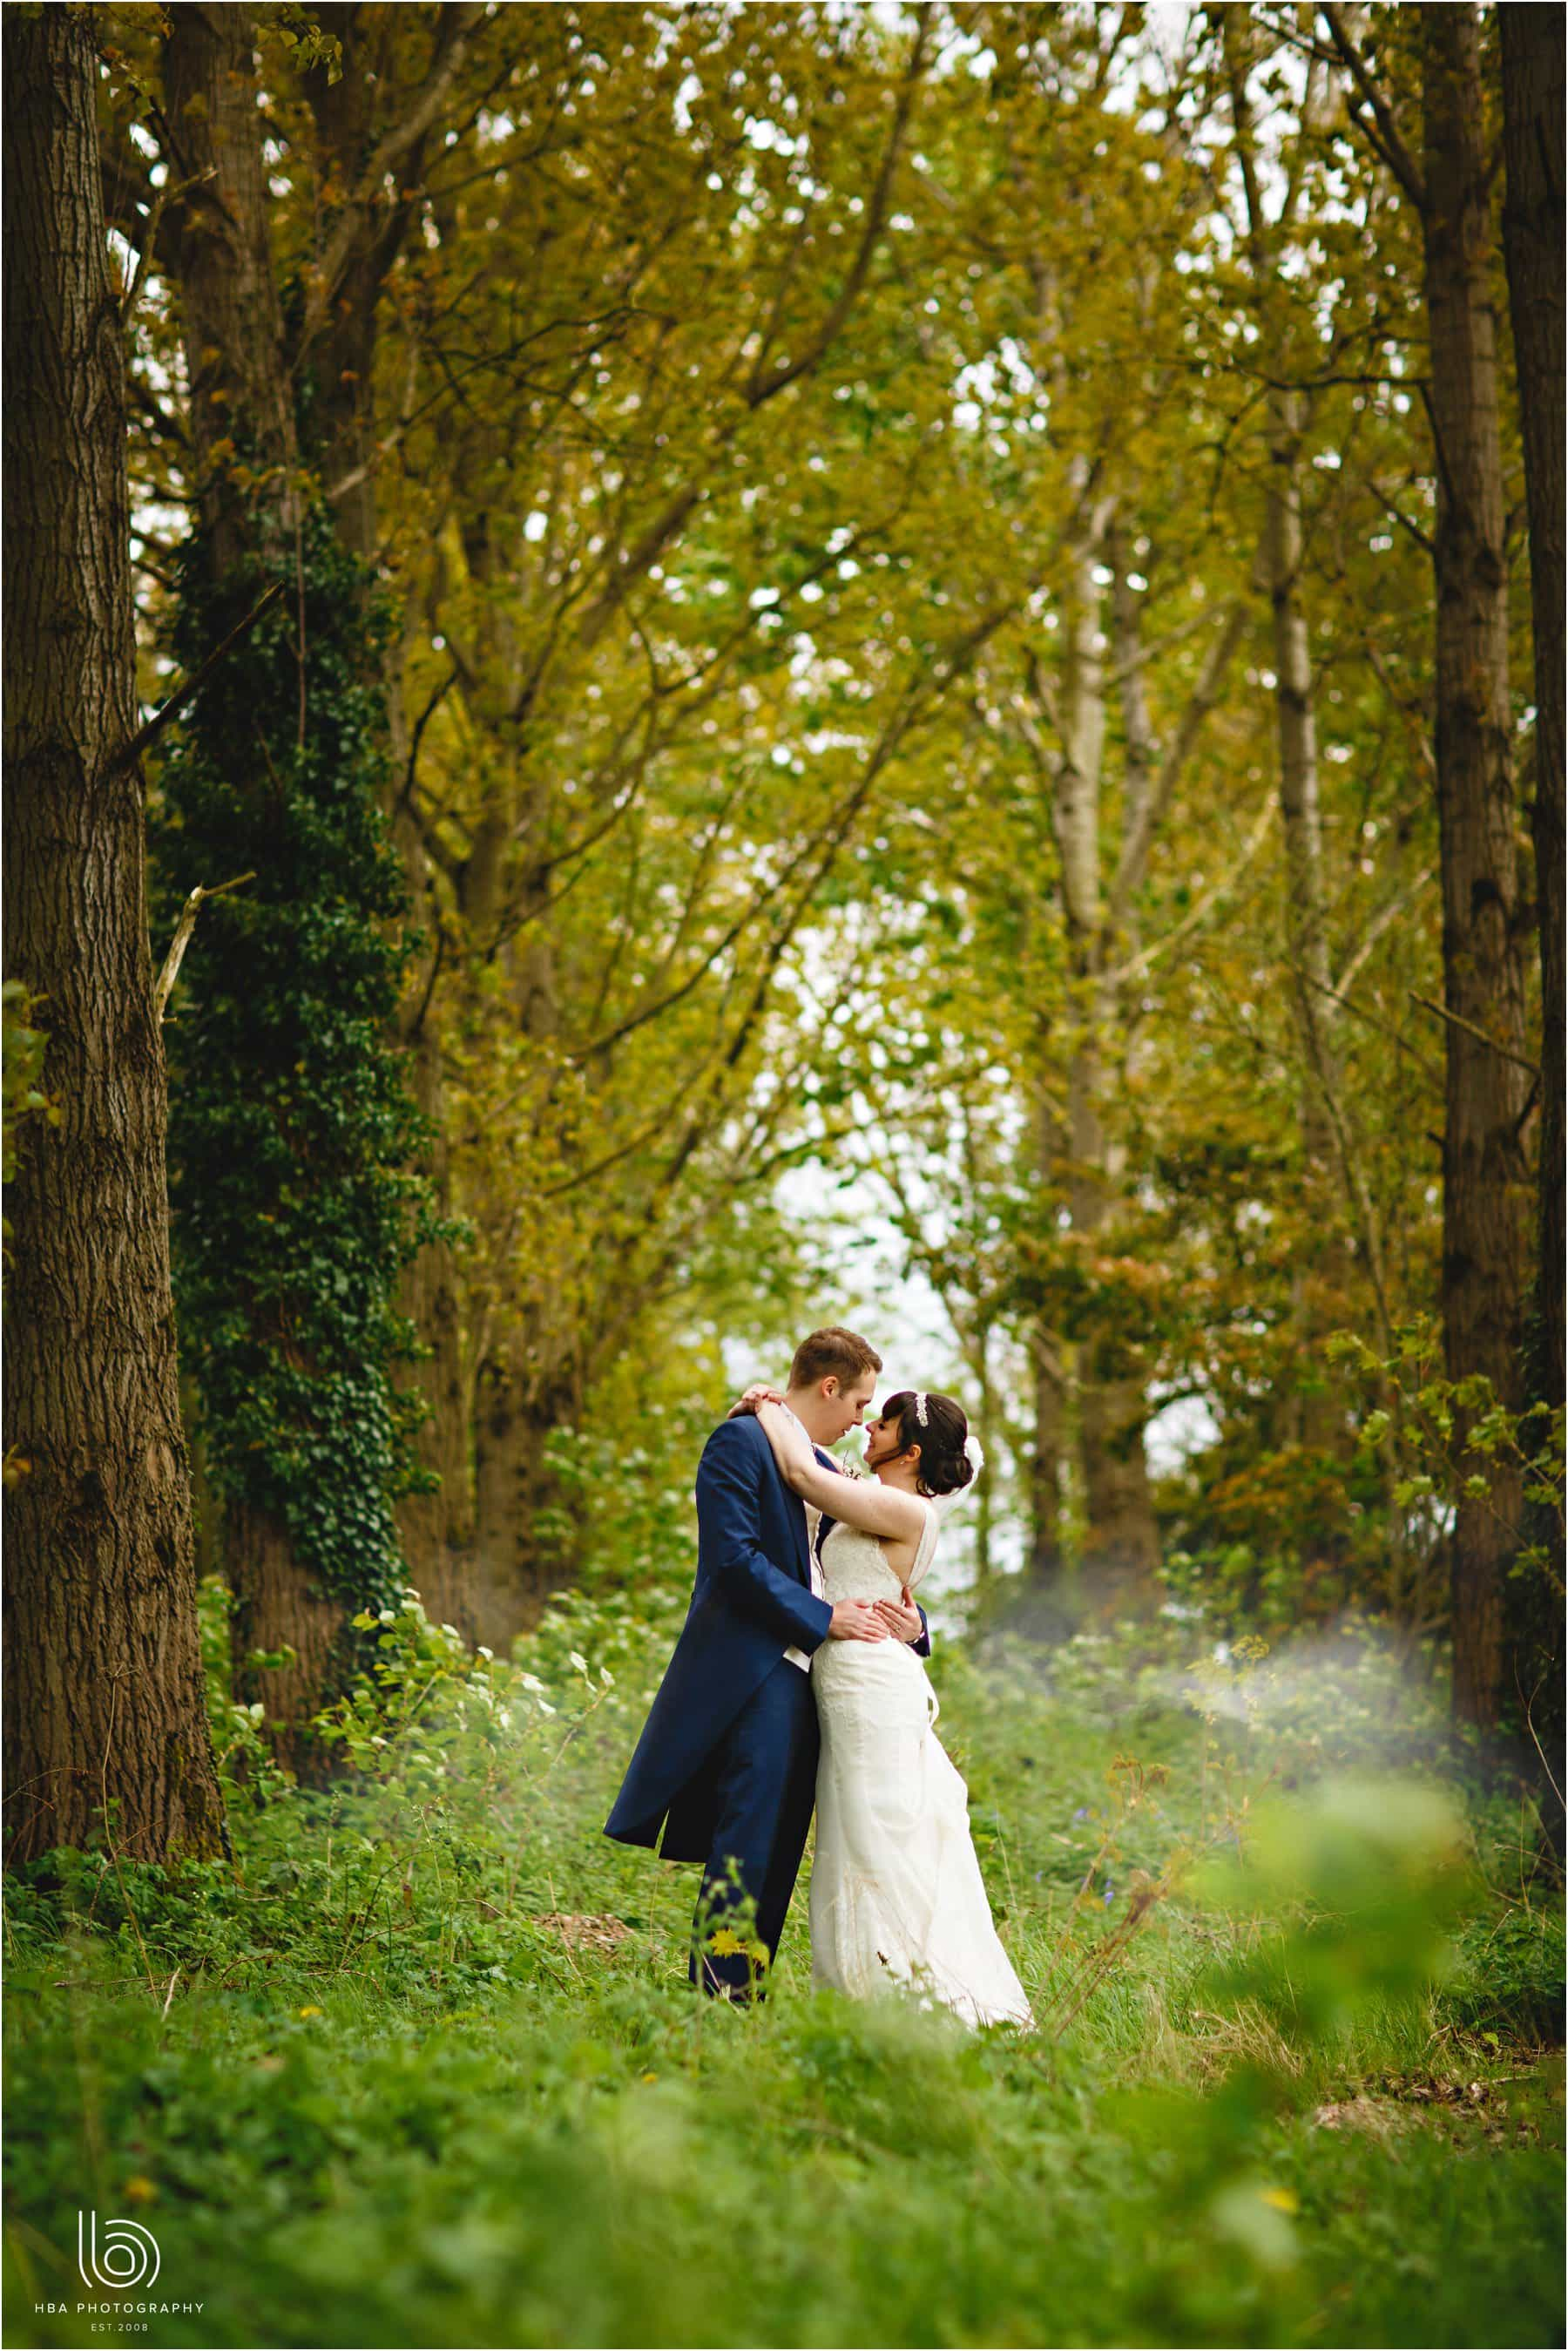 the bride and groom in the woods